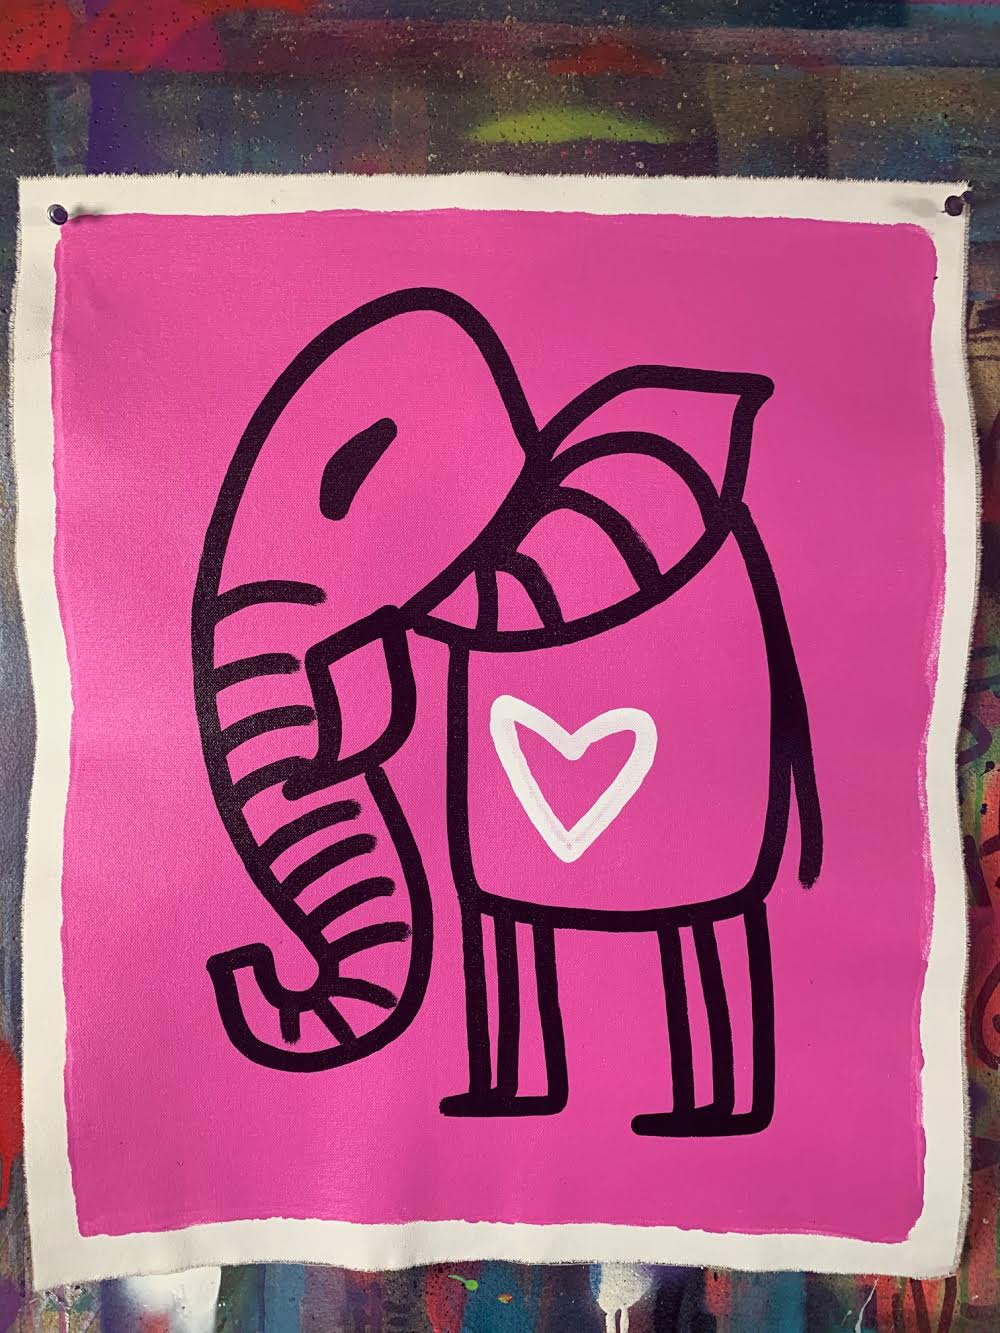 Cave Elephant | Cosmic Pink + Black + White Heart